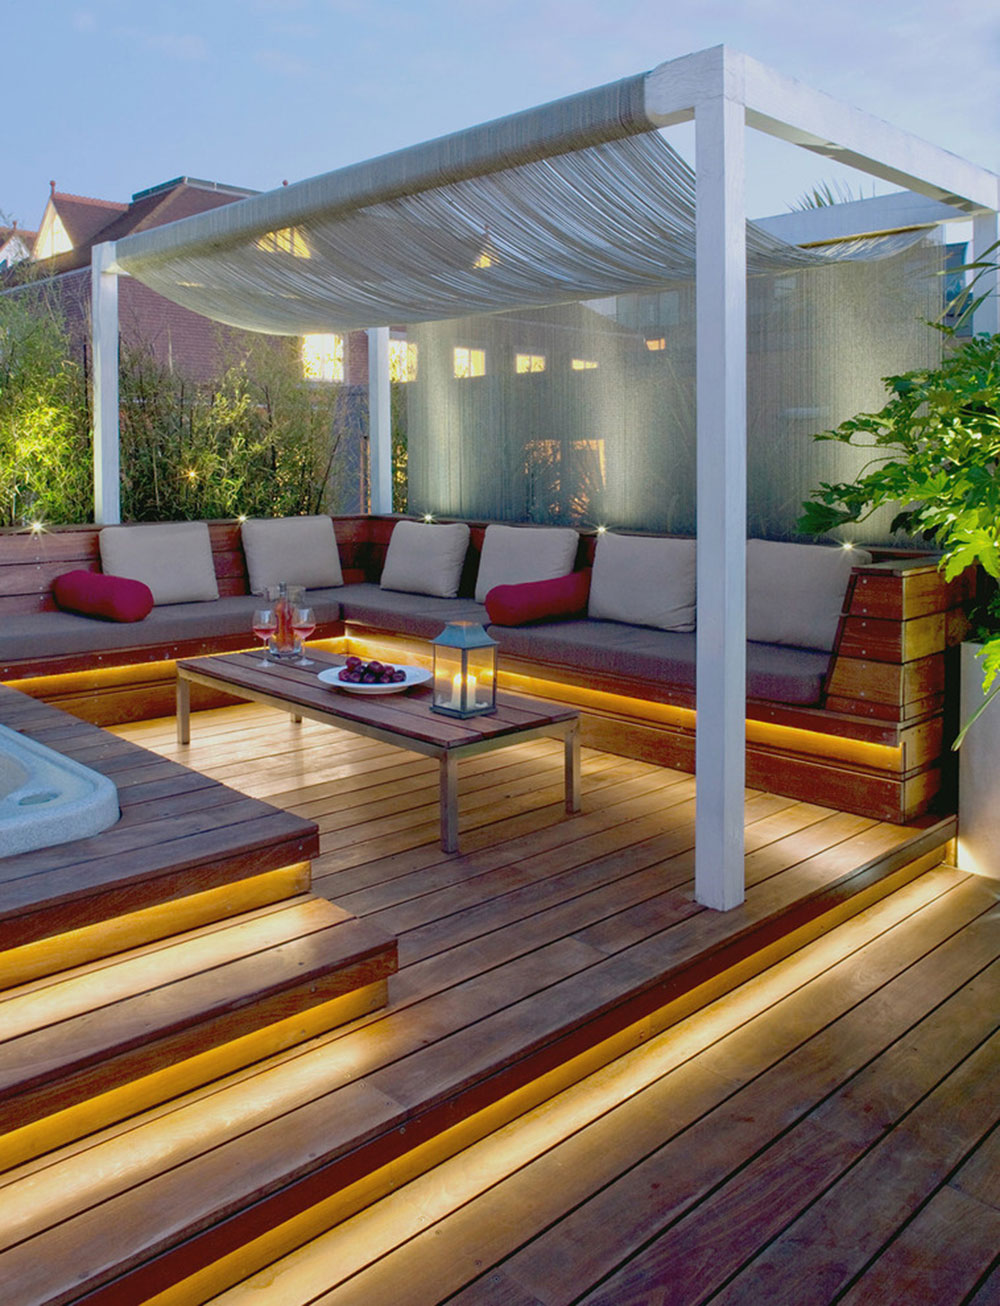 Bright-Your-Backyard-With-These-Deck-Lighting-Ideas4 Backyard Deck Lighting Ideas